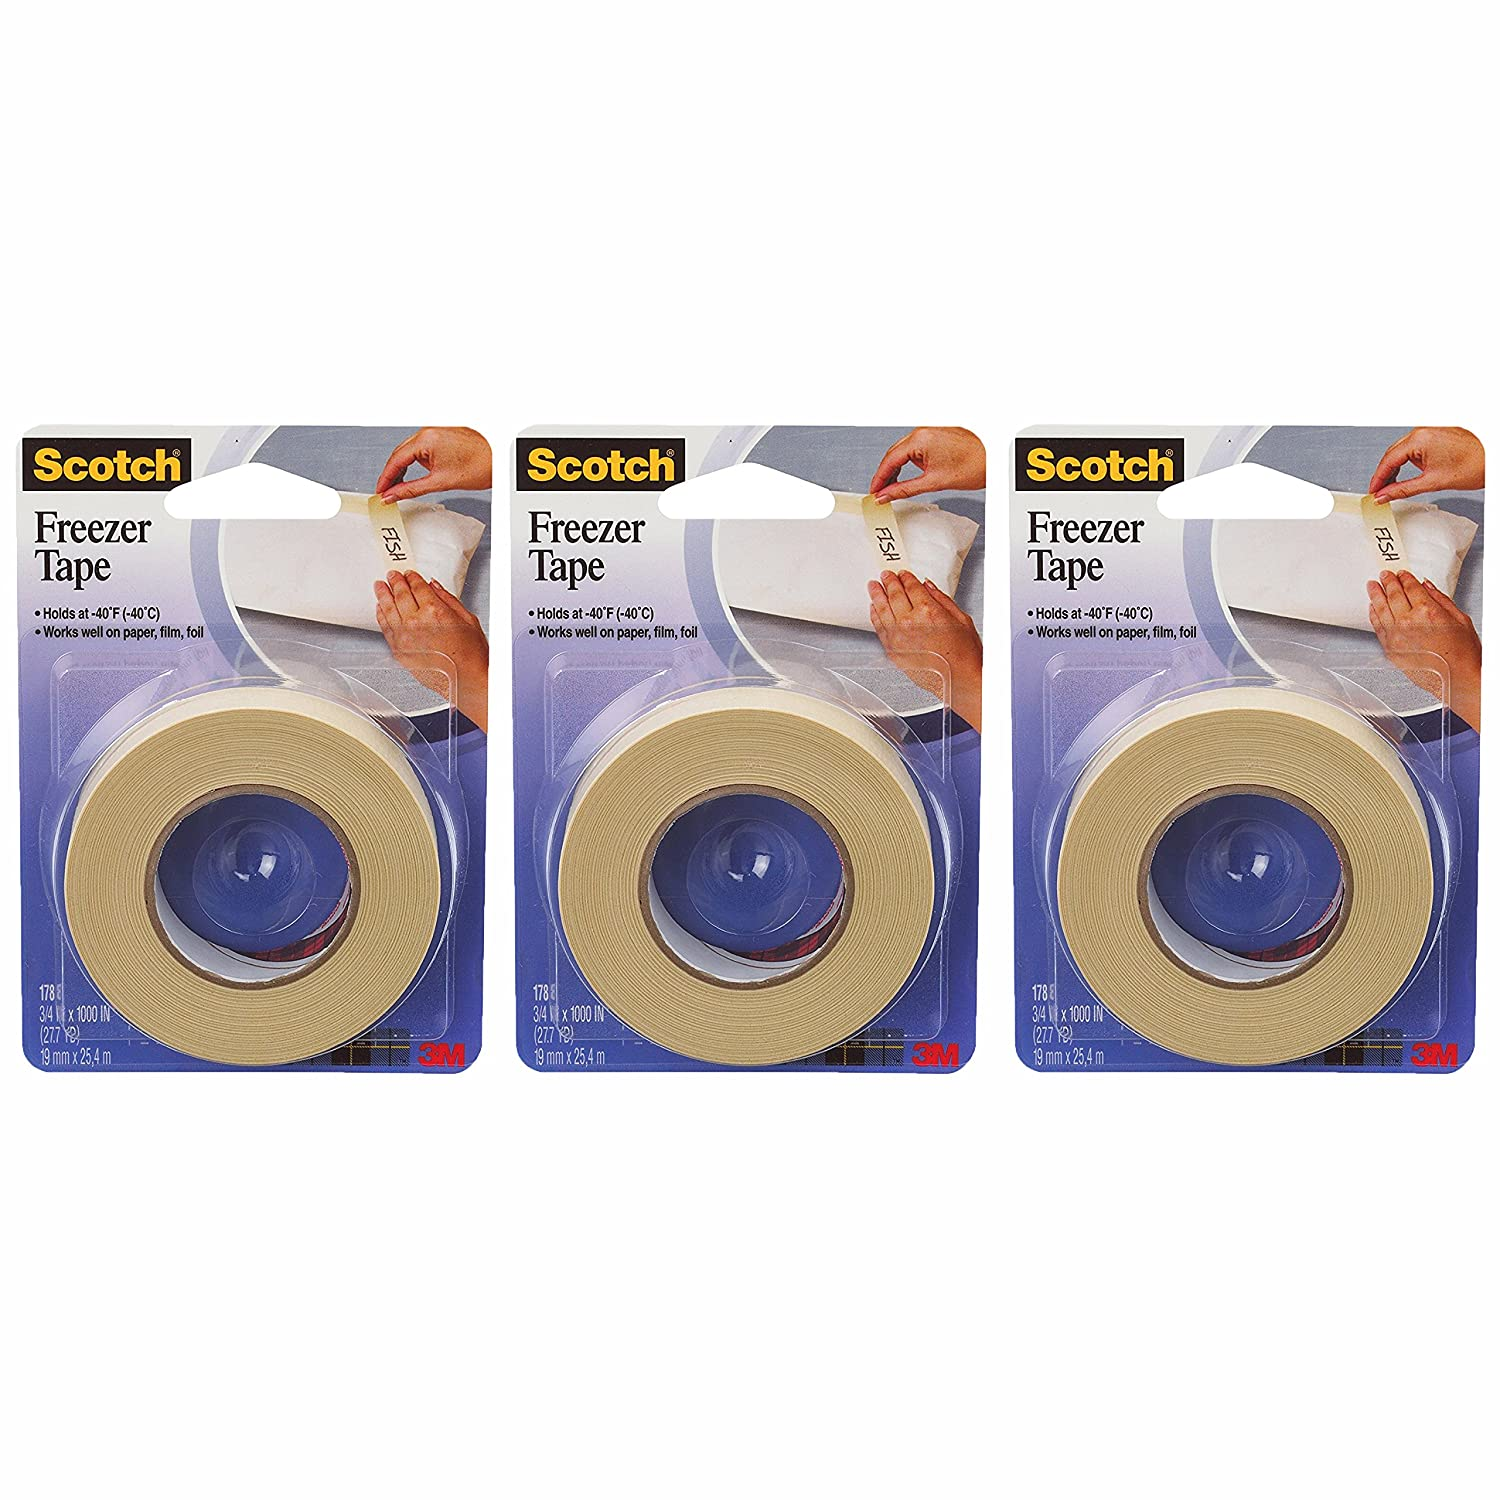 "3M 178 ¾"" x 1100"" Freezer Tape,pack of 3"